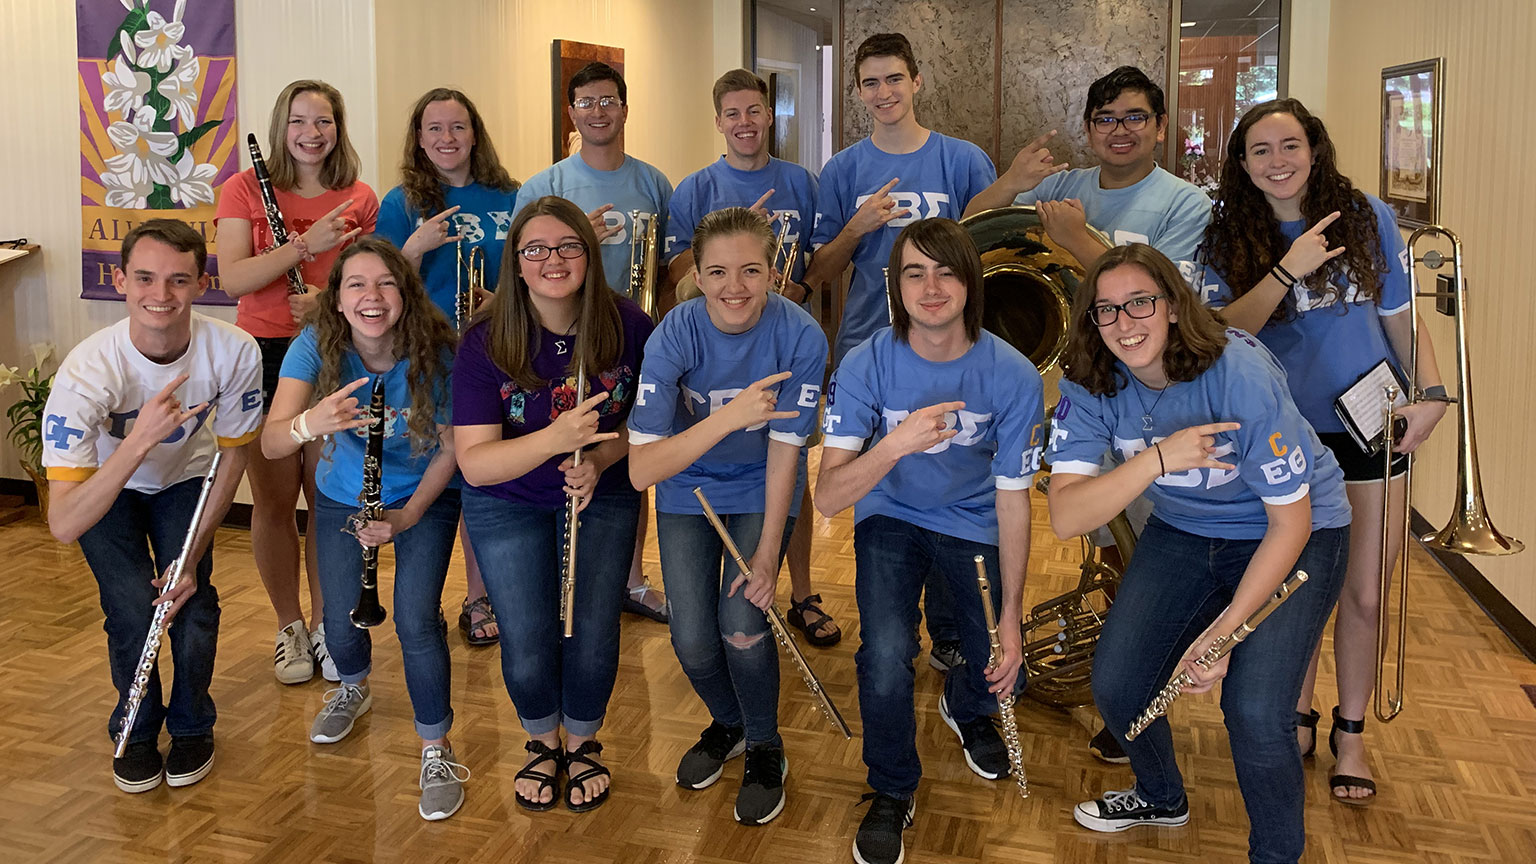 A group of Tau Beta Sigma sorority members pose with their instruments for a group photo. All the people in this photo are wearing shirts with the Greek letters for Tau Beta Sigma on them.